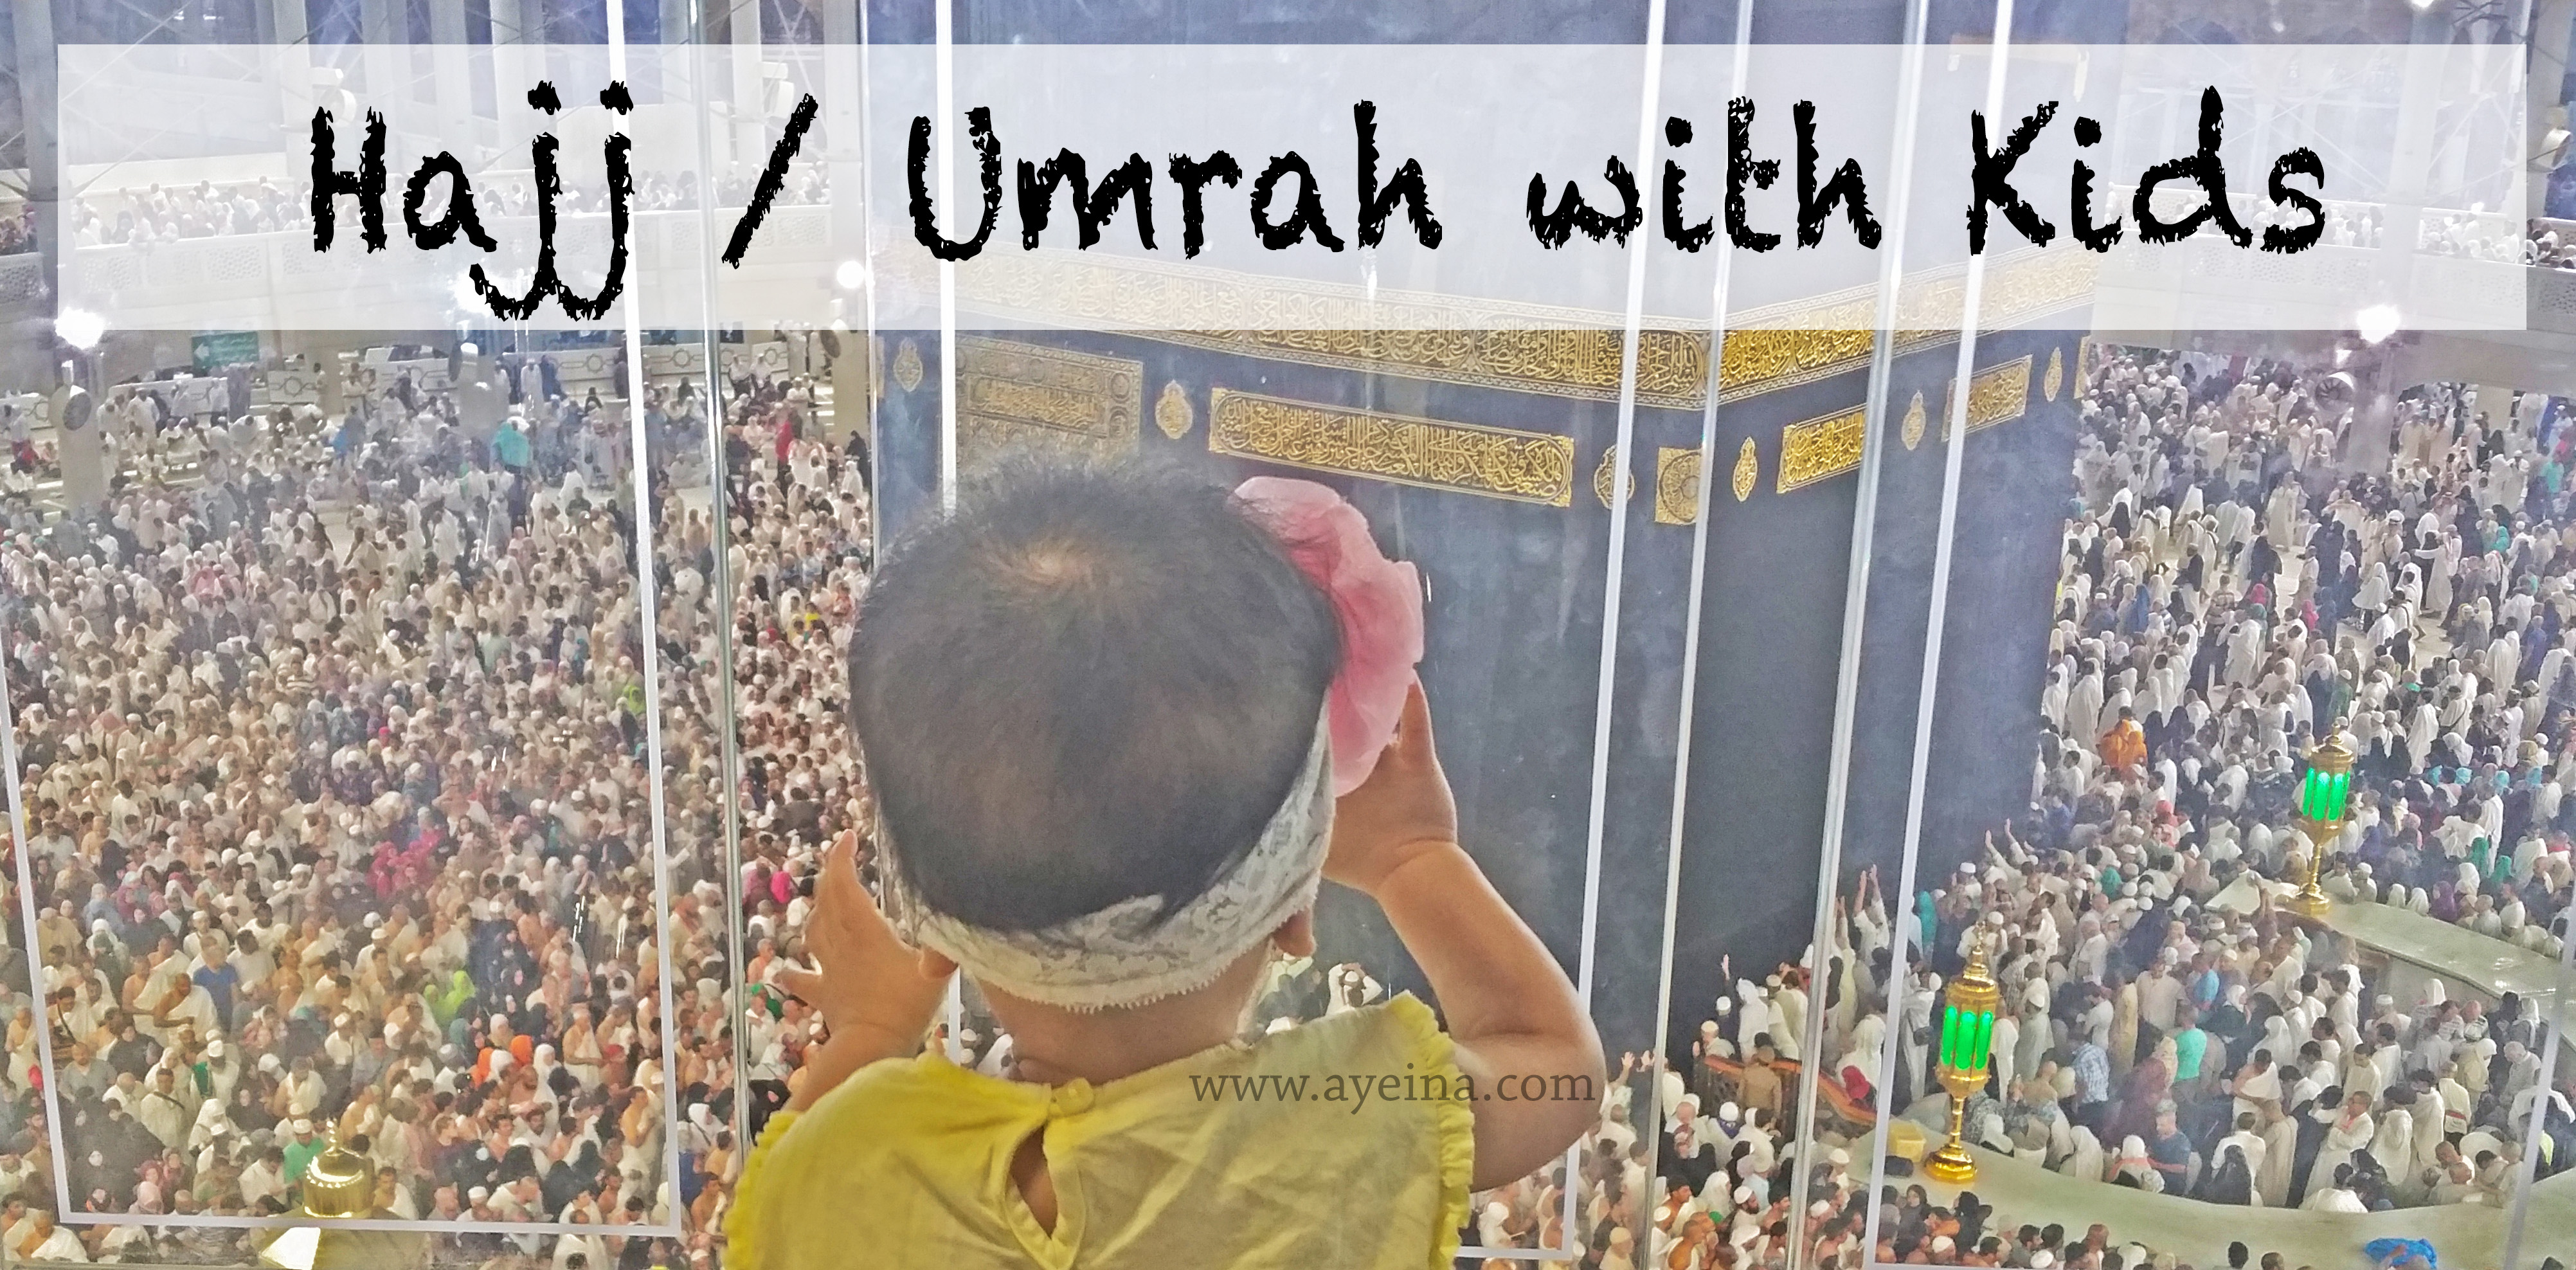 Packing Checklist for Hajj/Umrah with Kids